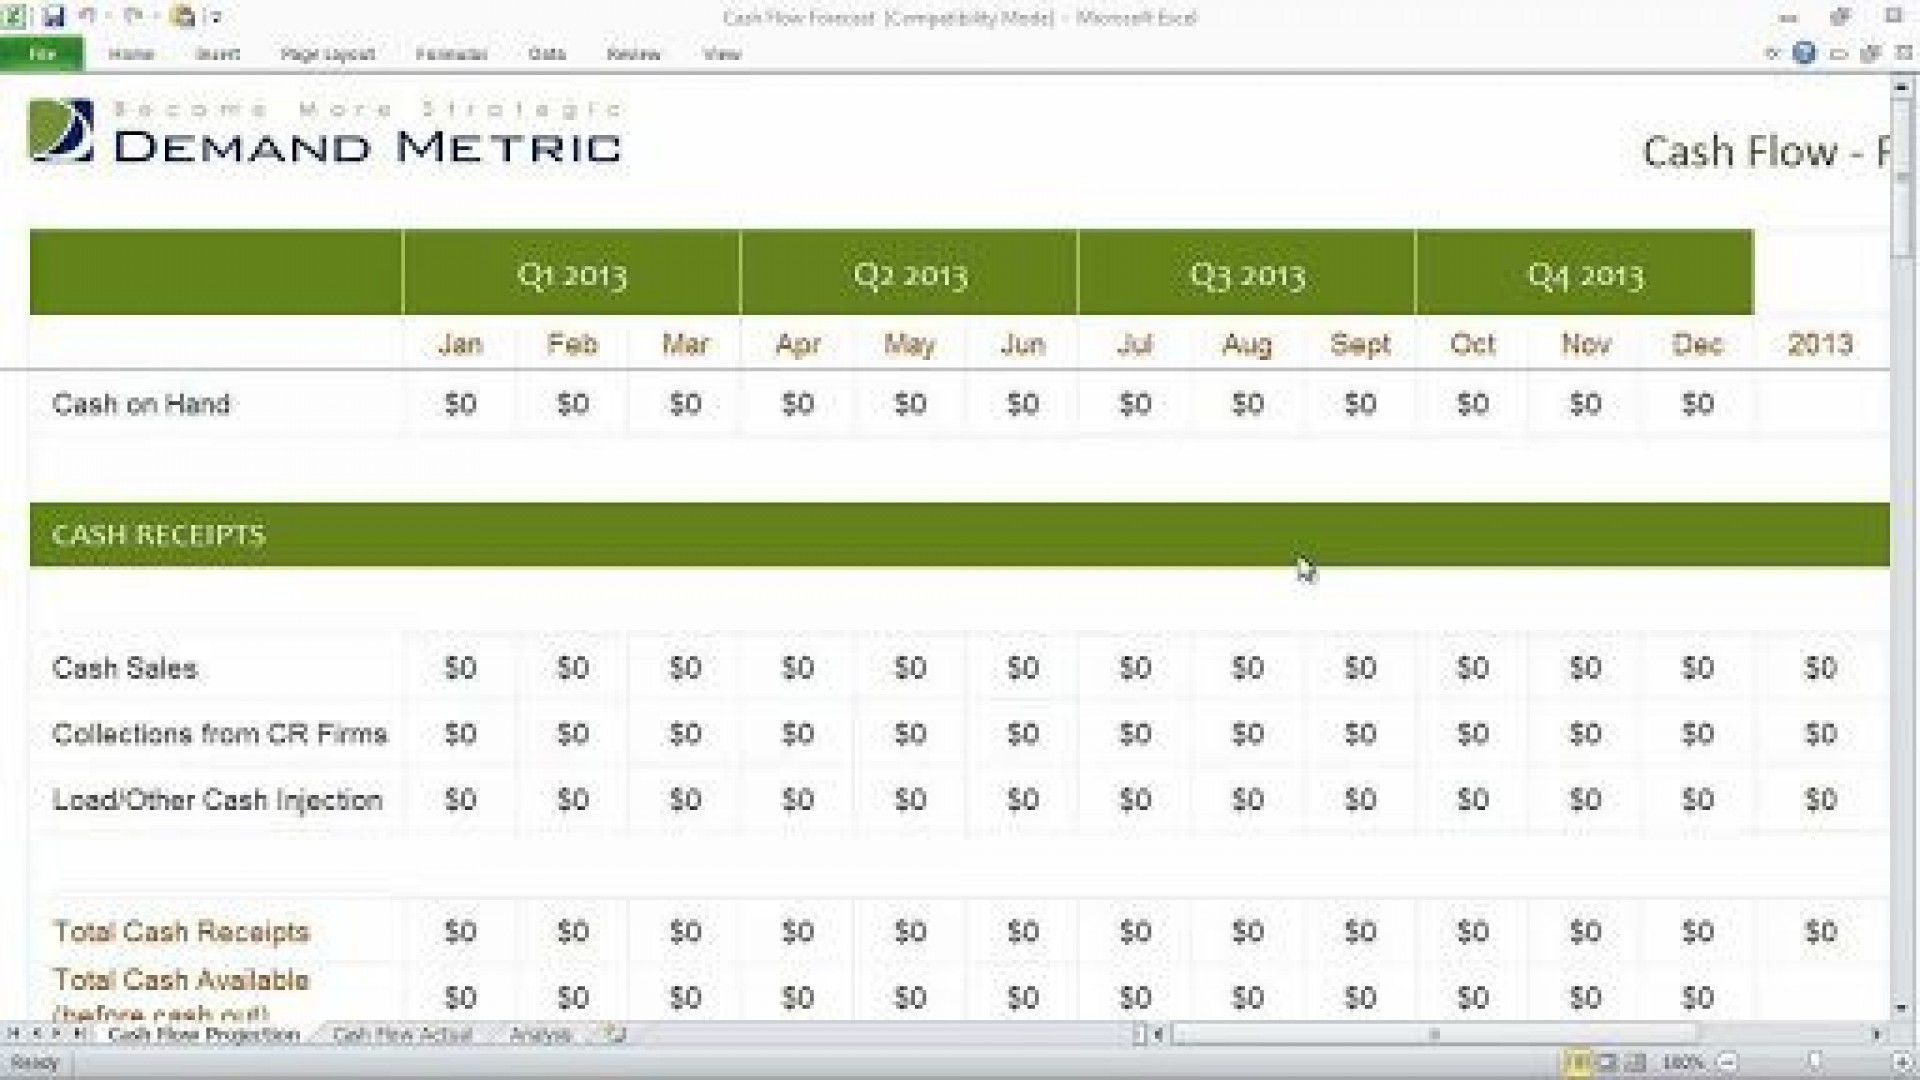 009 Archaicawful Cash Flow Forecast Excel Template Uk Free Example Full